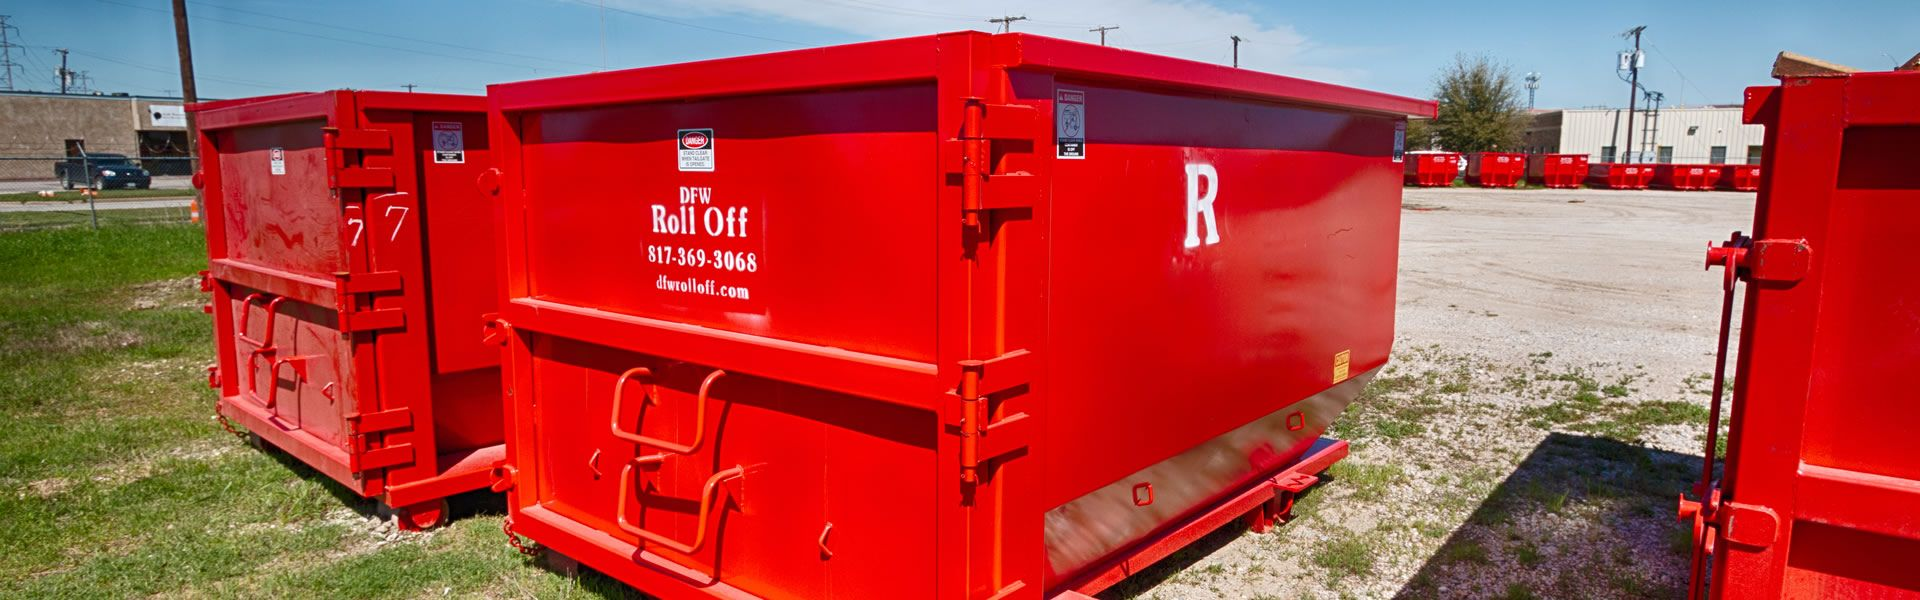 Get dumpster rental services in dallas dfw roll off